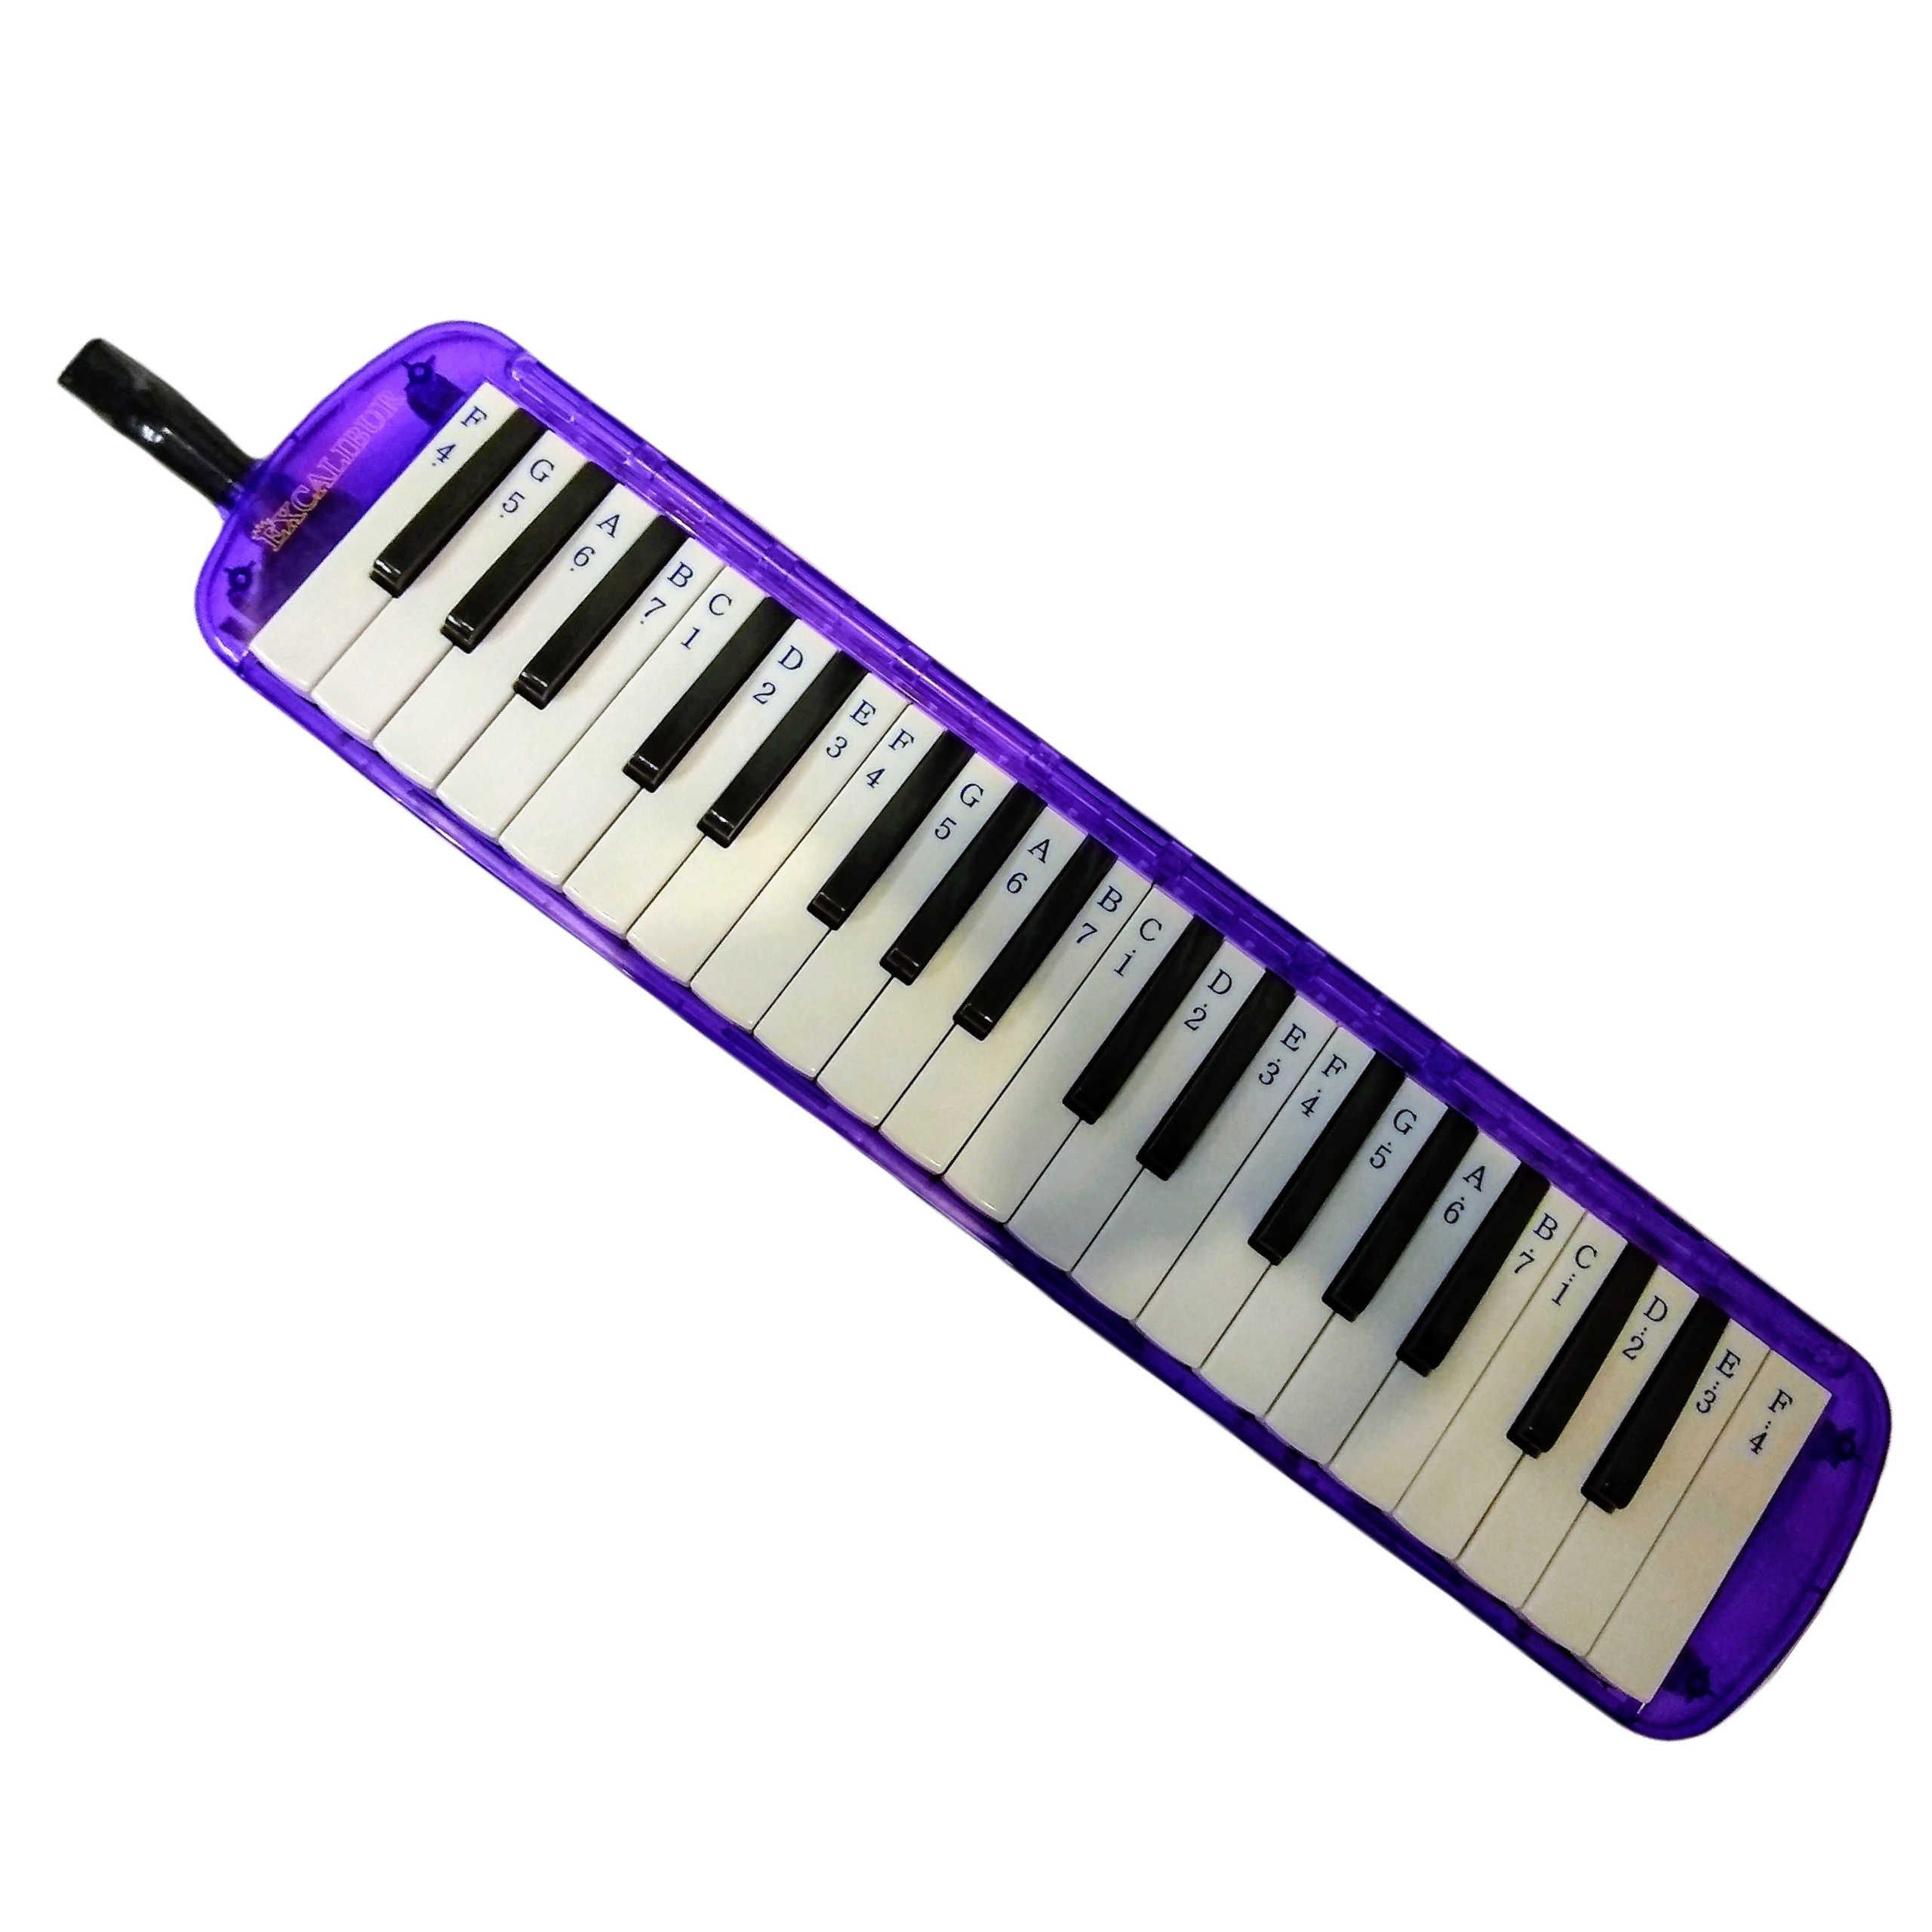 Excalibur 37 Note Transparent Pro Series Plumb Crazy Purple Transparent With Learning System